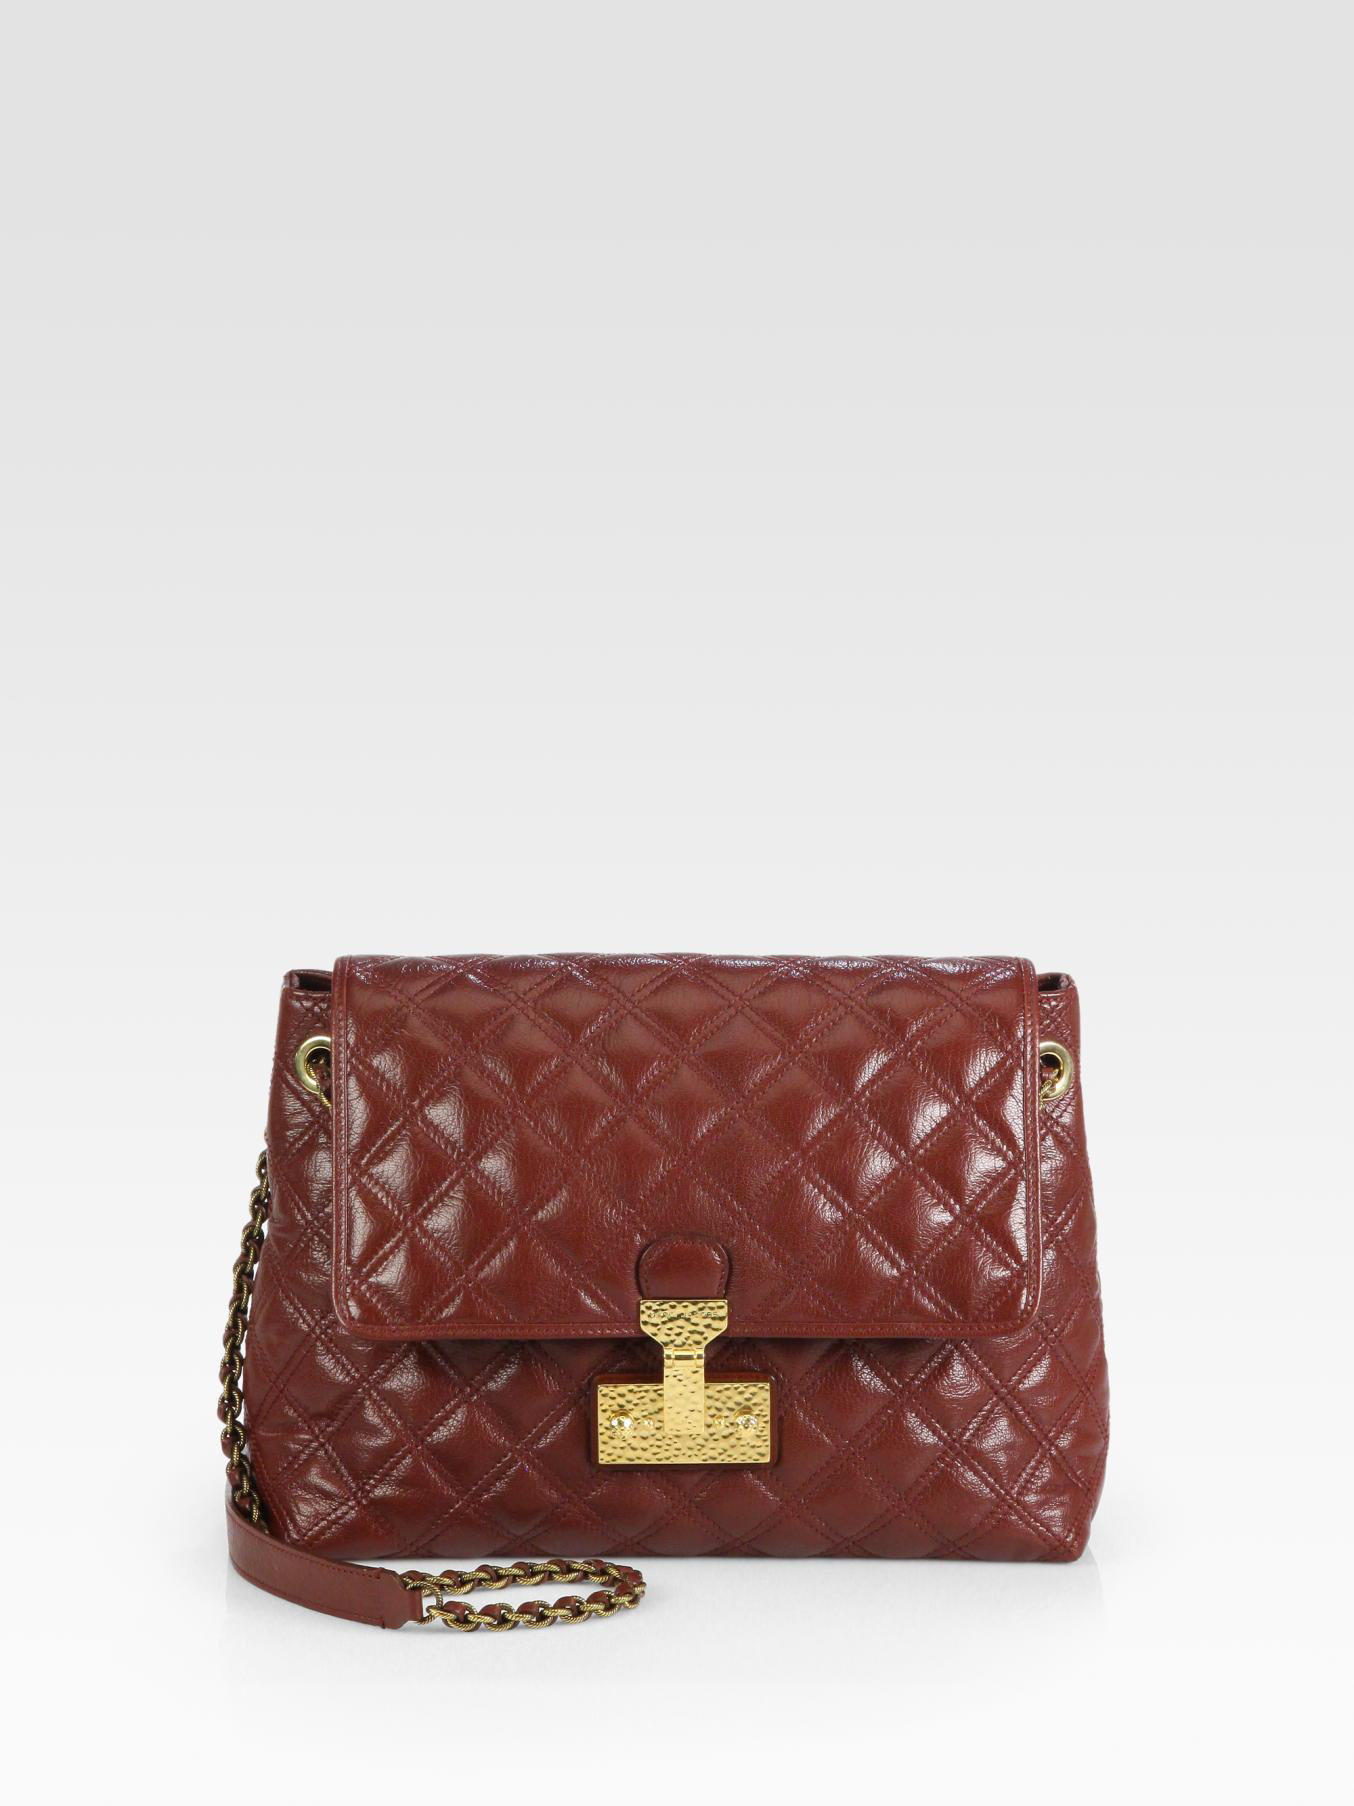 2d4a084d3265 Marc Jacobs Baroque Xl Single Quilted Shoulder Bag in Brown - Lyst